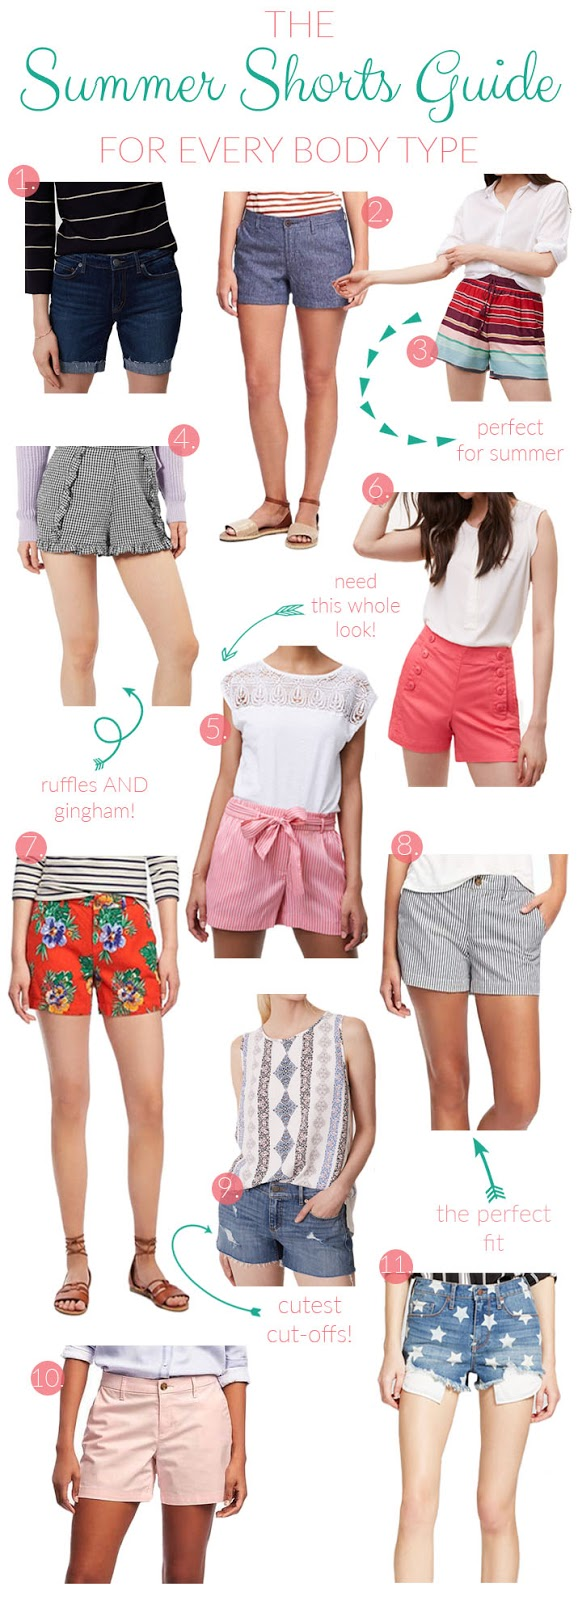 Cute Summer Shorts Guide for Every body Type by fashion blogger Laura of Walking in Memphis in High Heels.